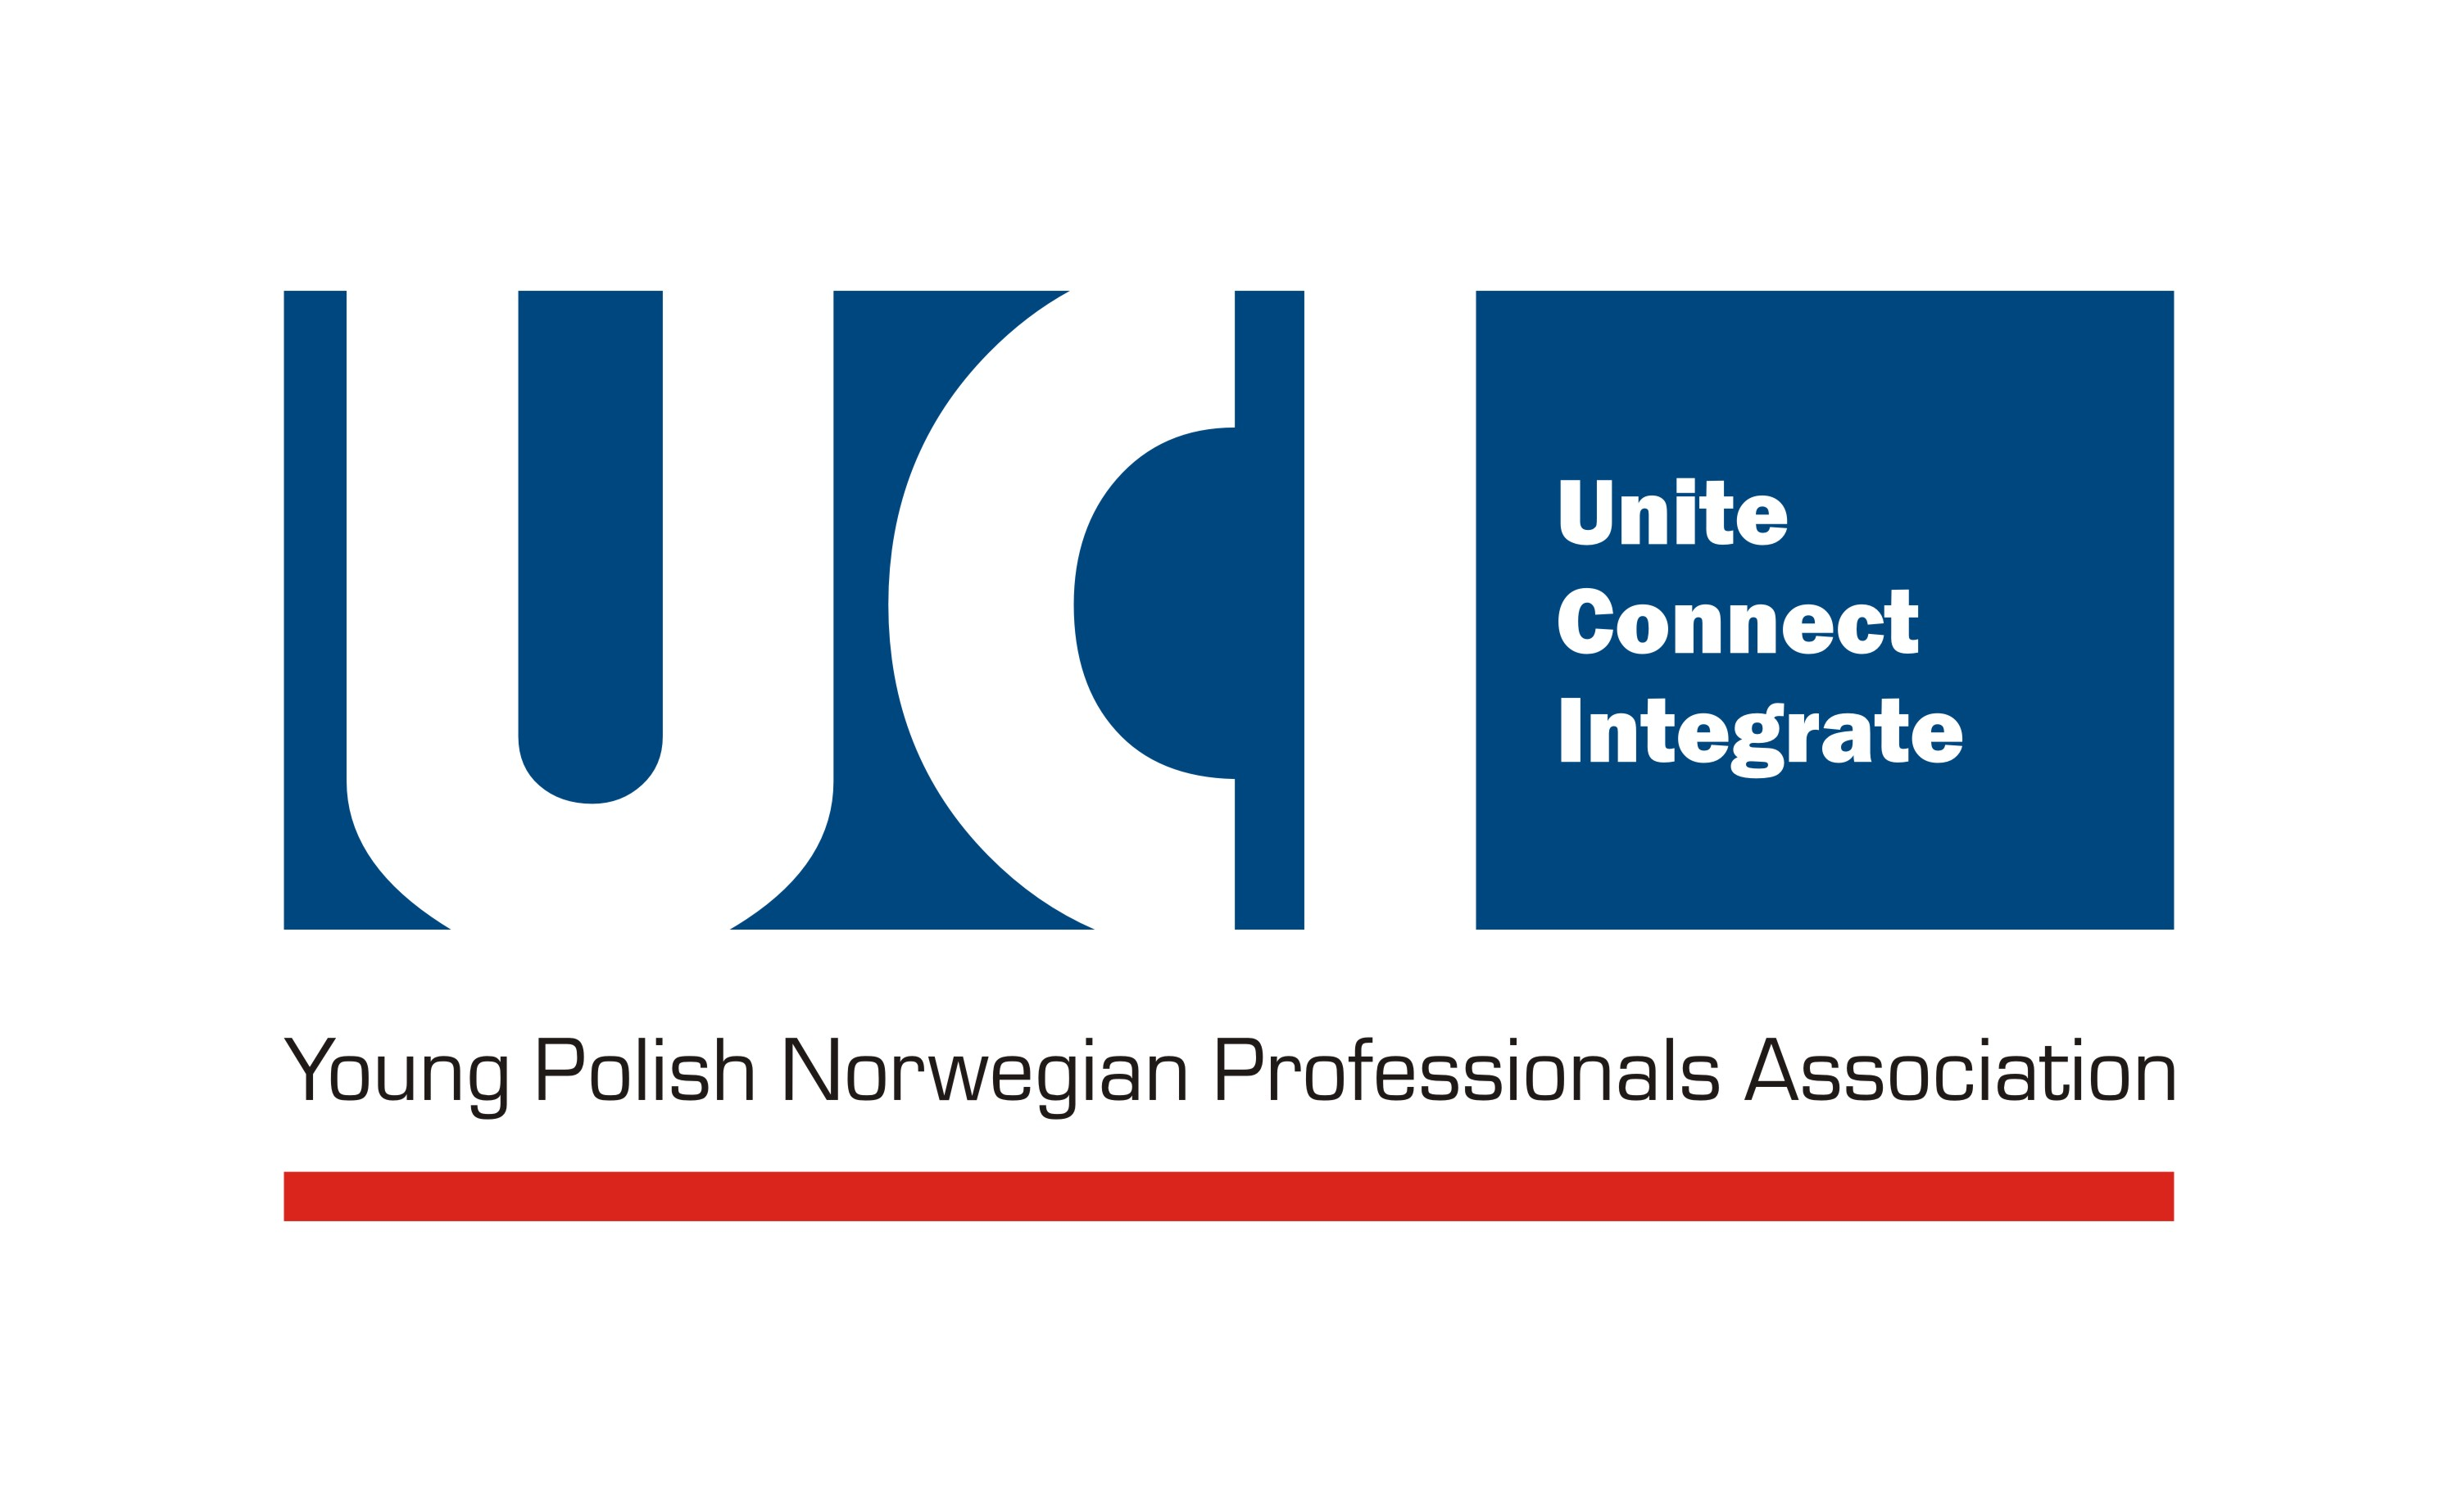 Young Polish Norwegian Professionals Associations